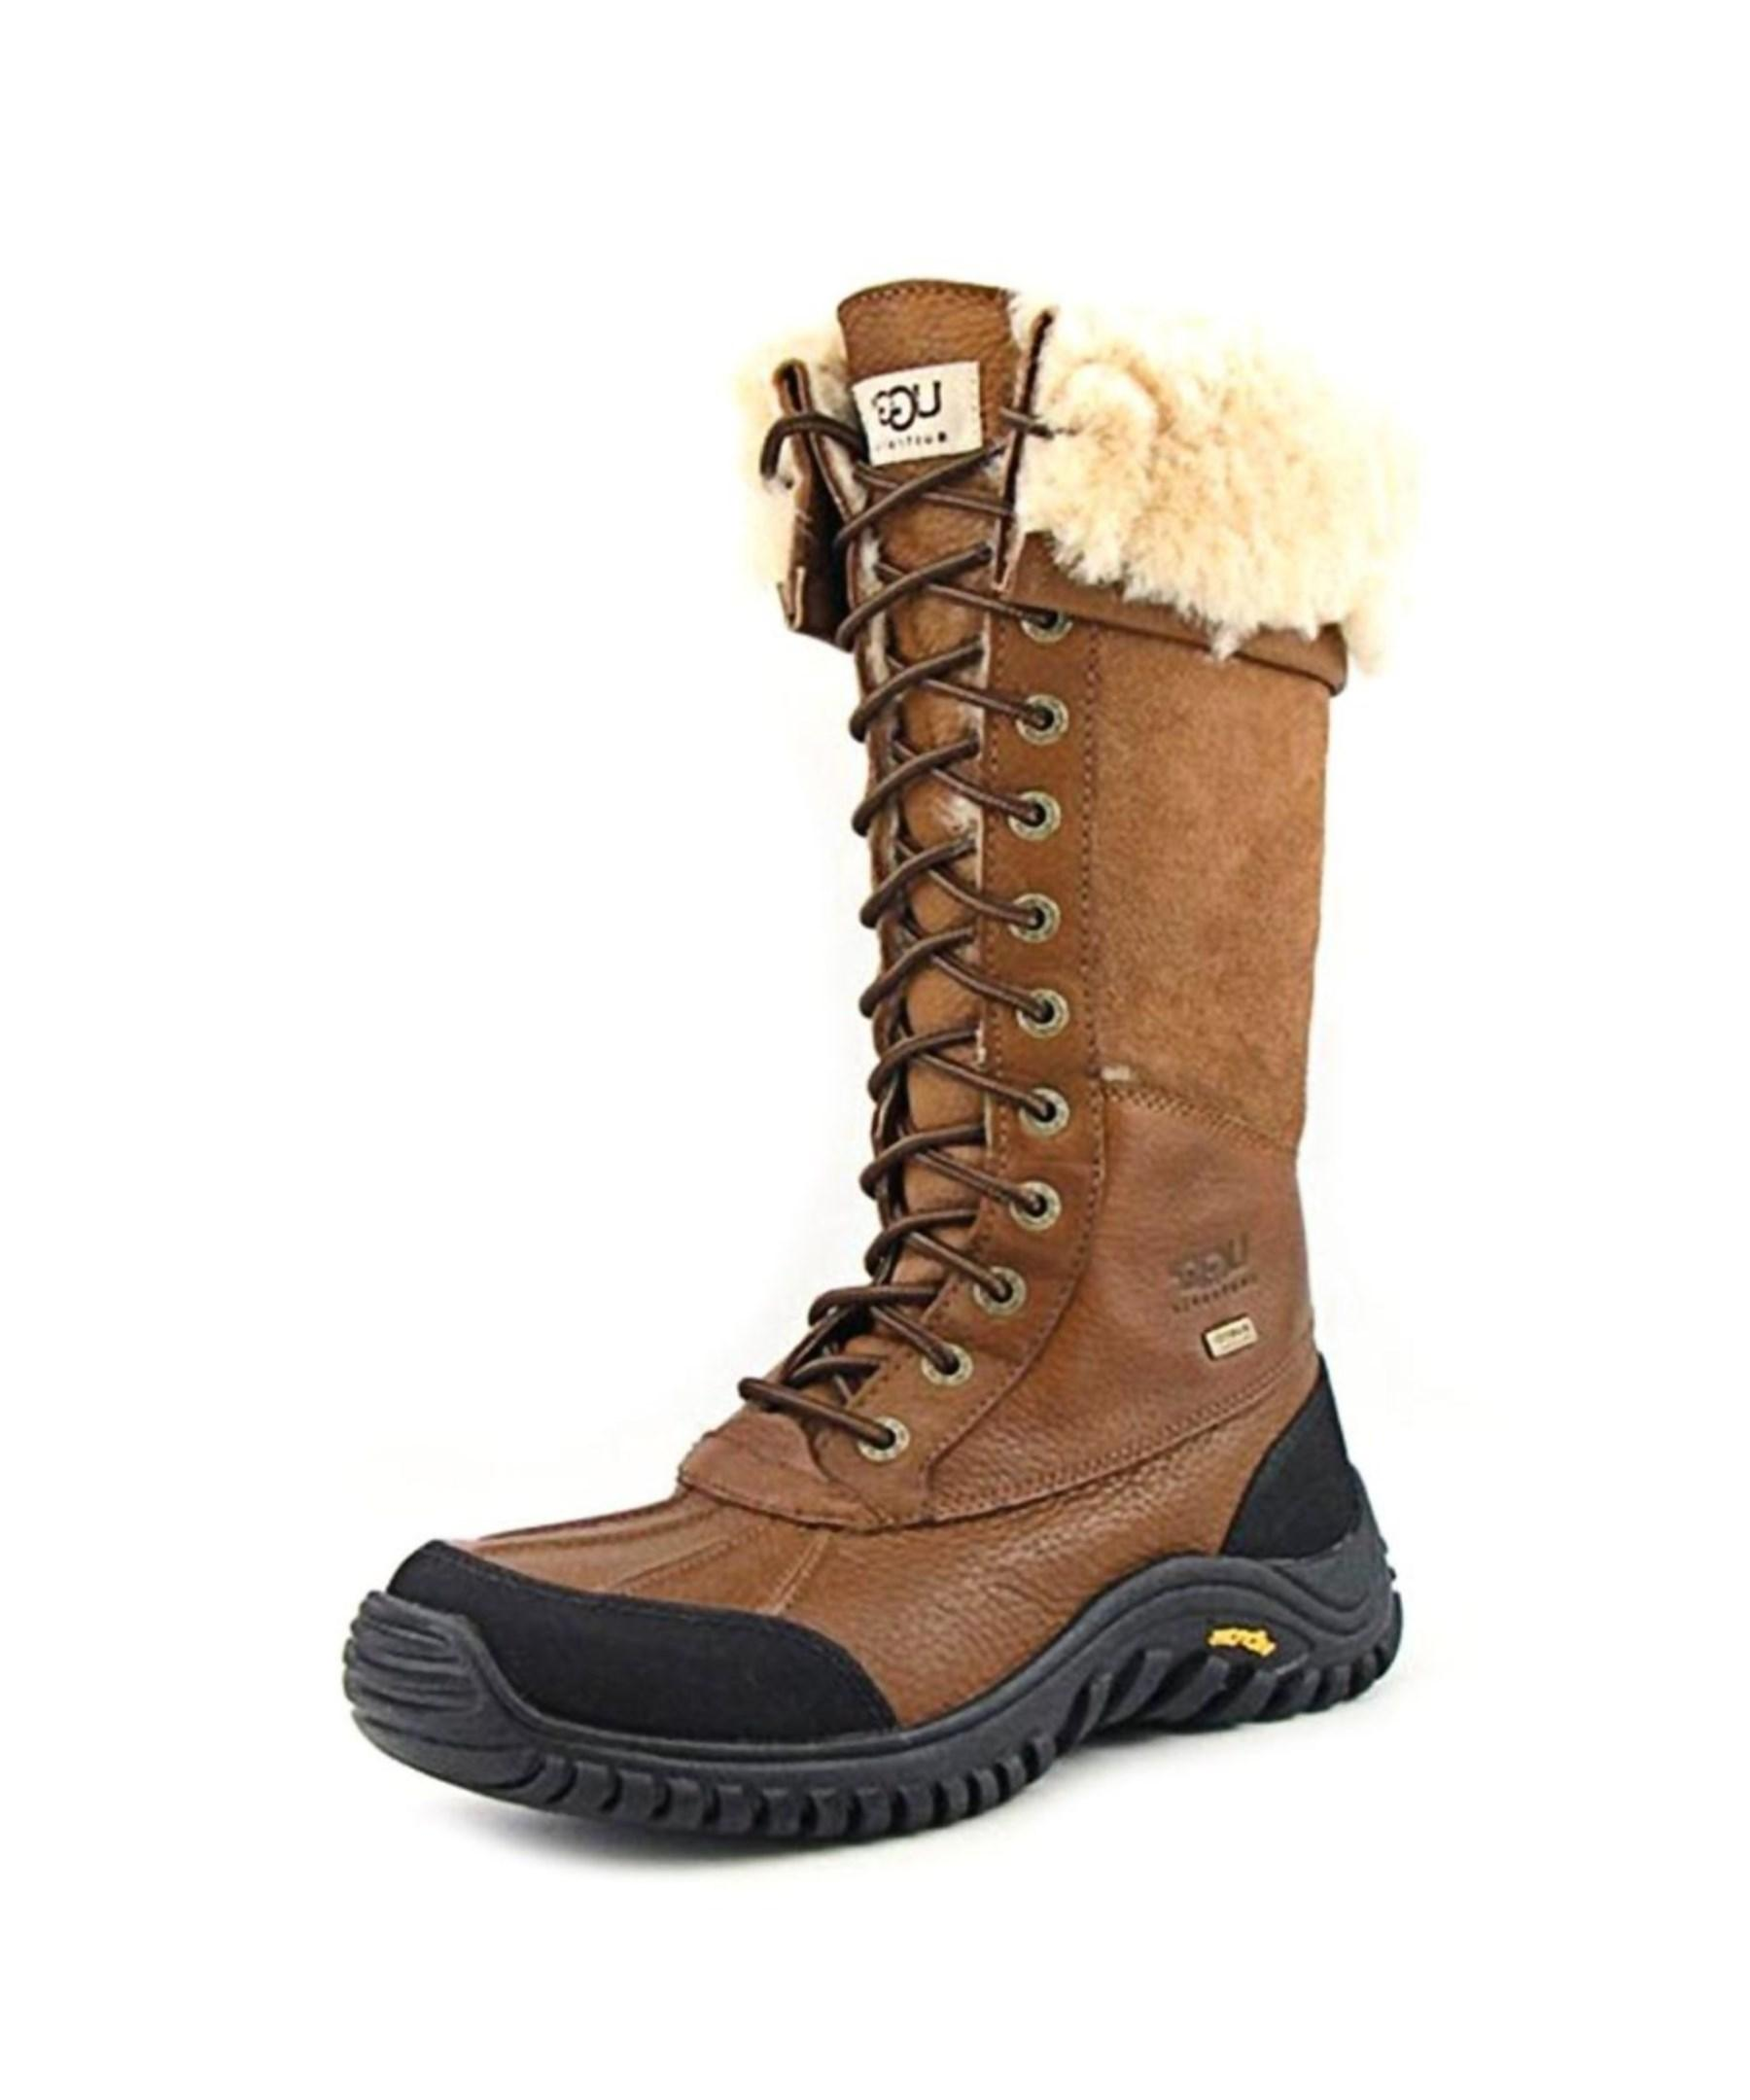 how to clean ugg adirondack boots